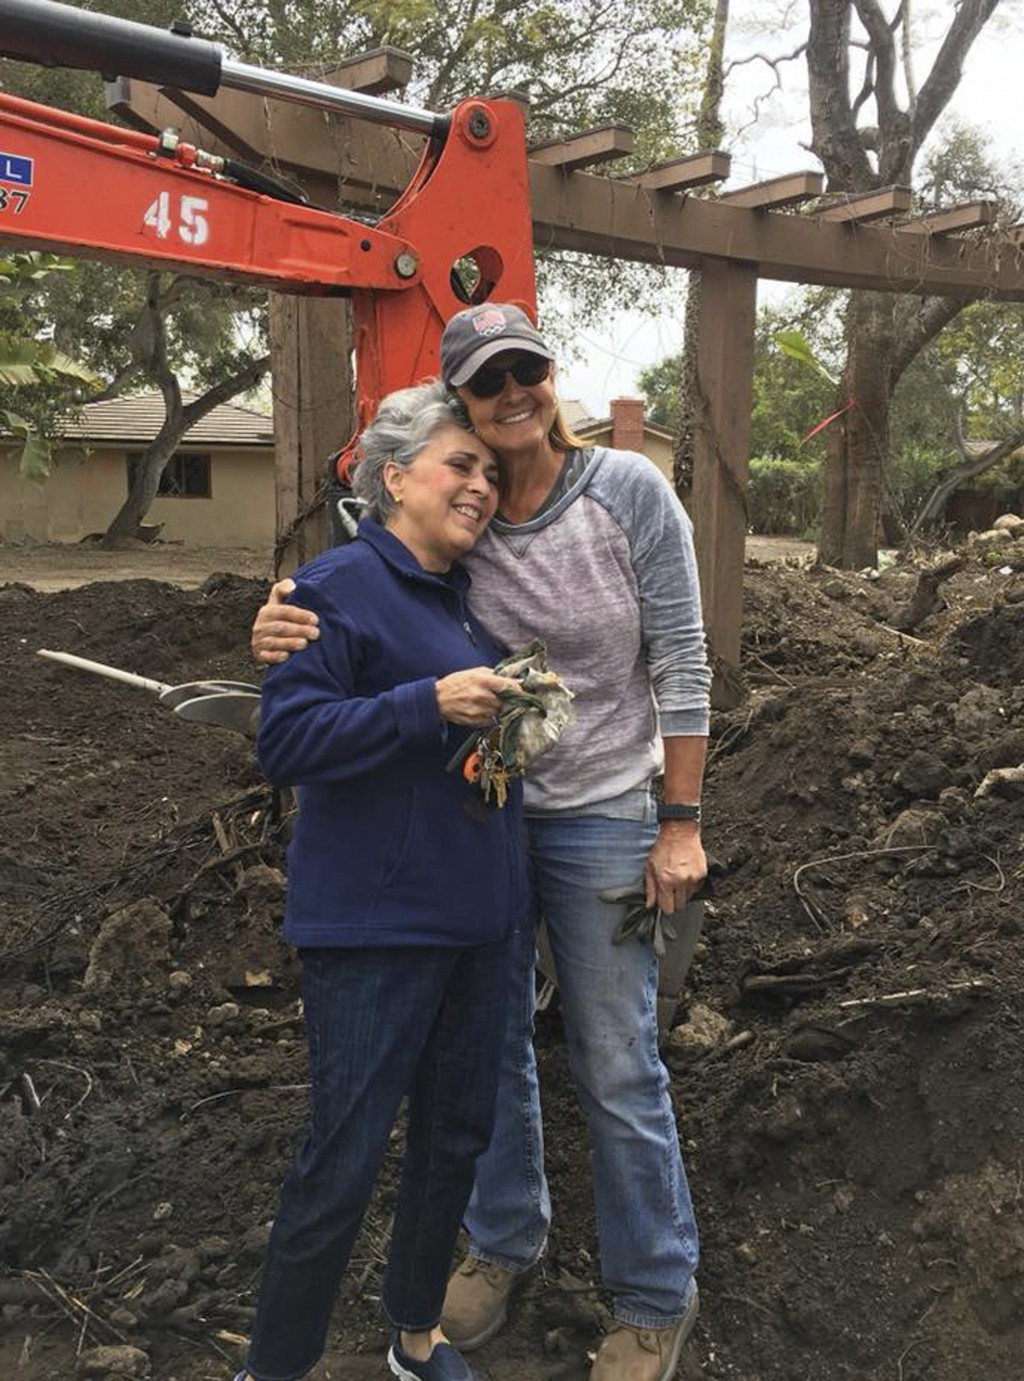 In this April 3, 2018, photo, provided by Sherri Ball, Mari Mitchel, left, poses for a photo with Ann Burgard, the woman who found her jewelry, near t